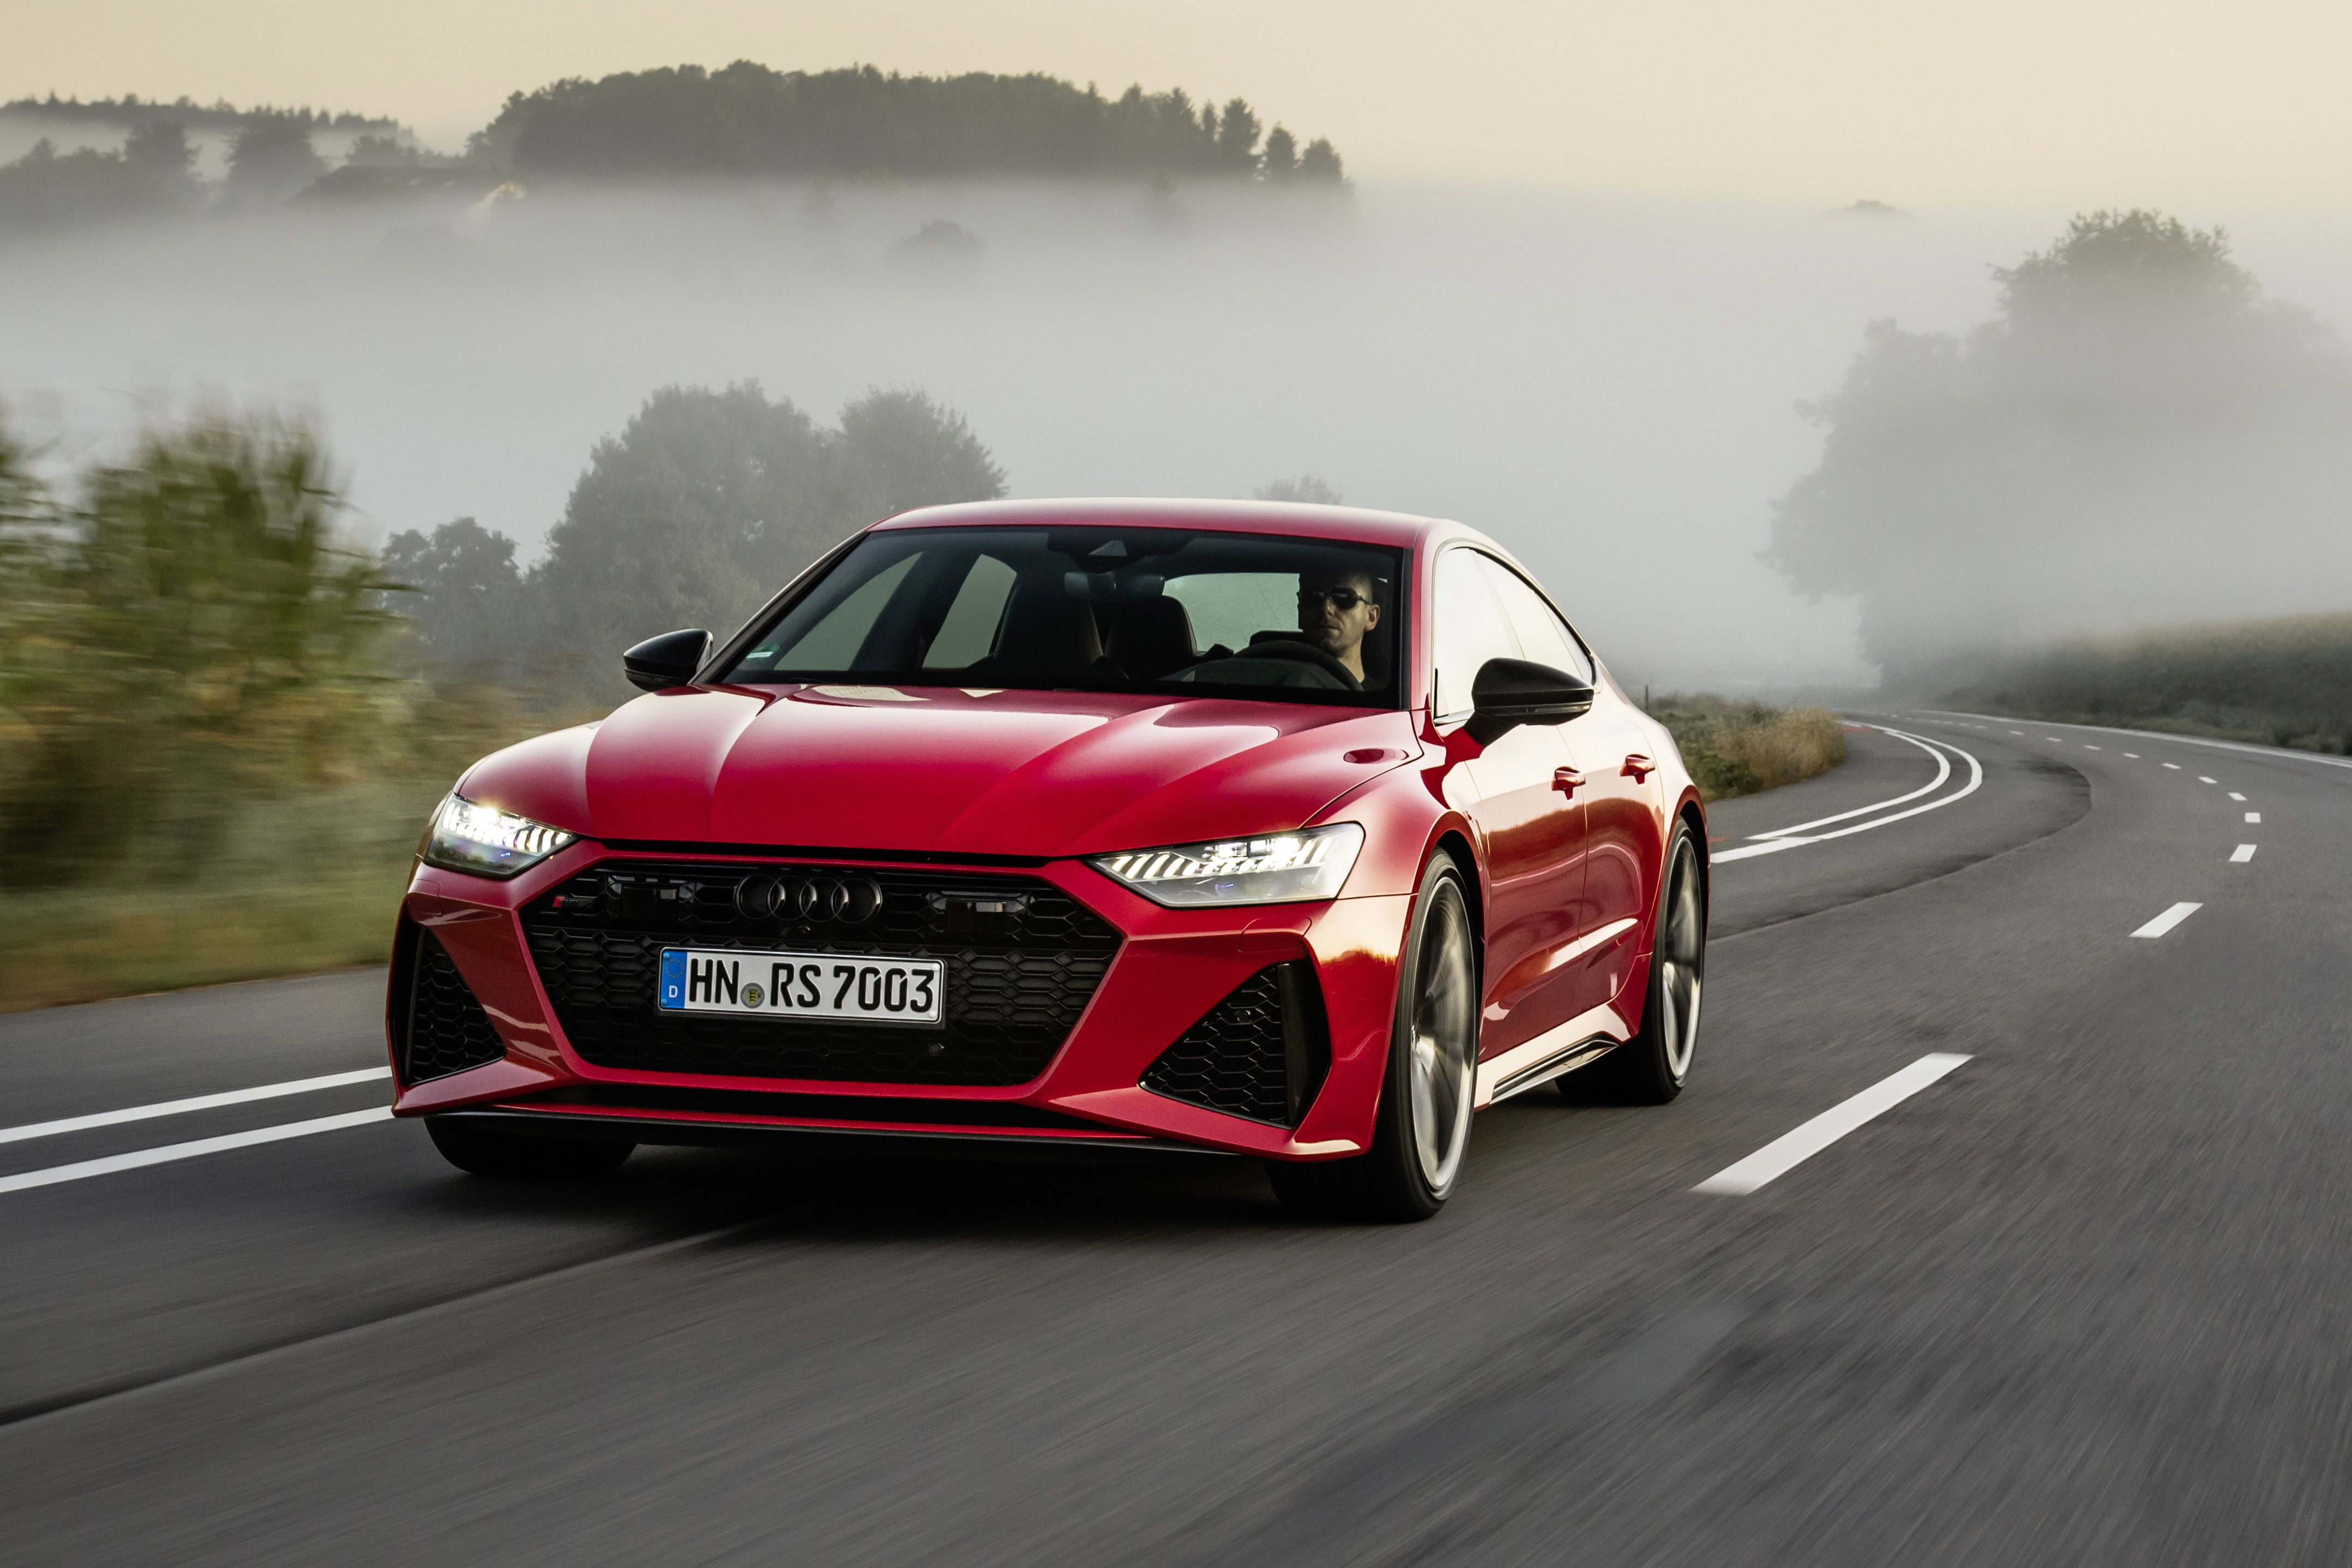 Review The Muscular 2020 Audi Rs7 May Be Complete Overkill But That S The Point The Globe And Mail